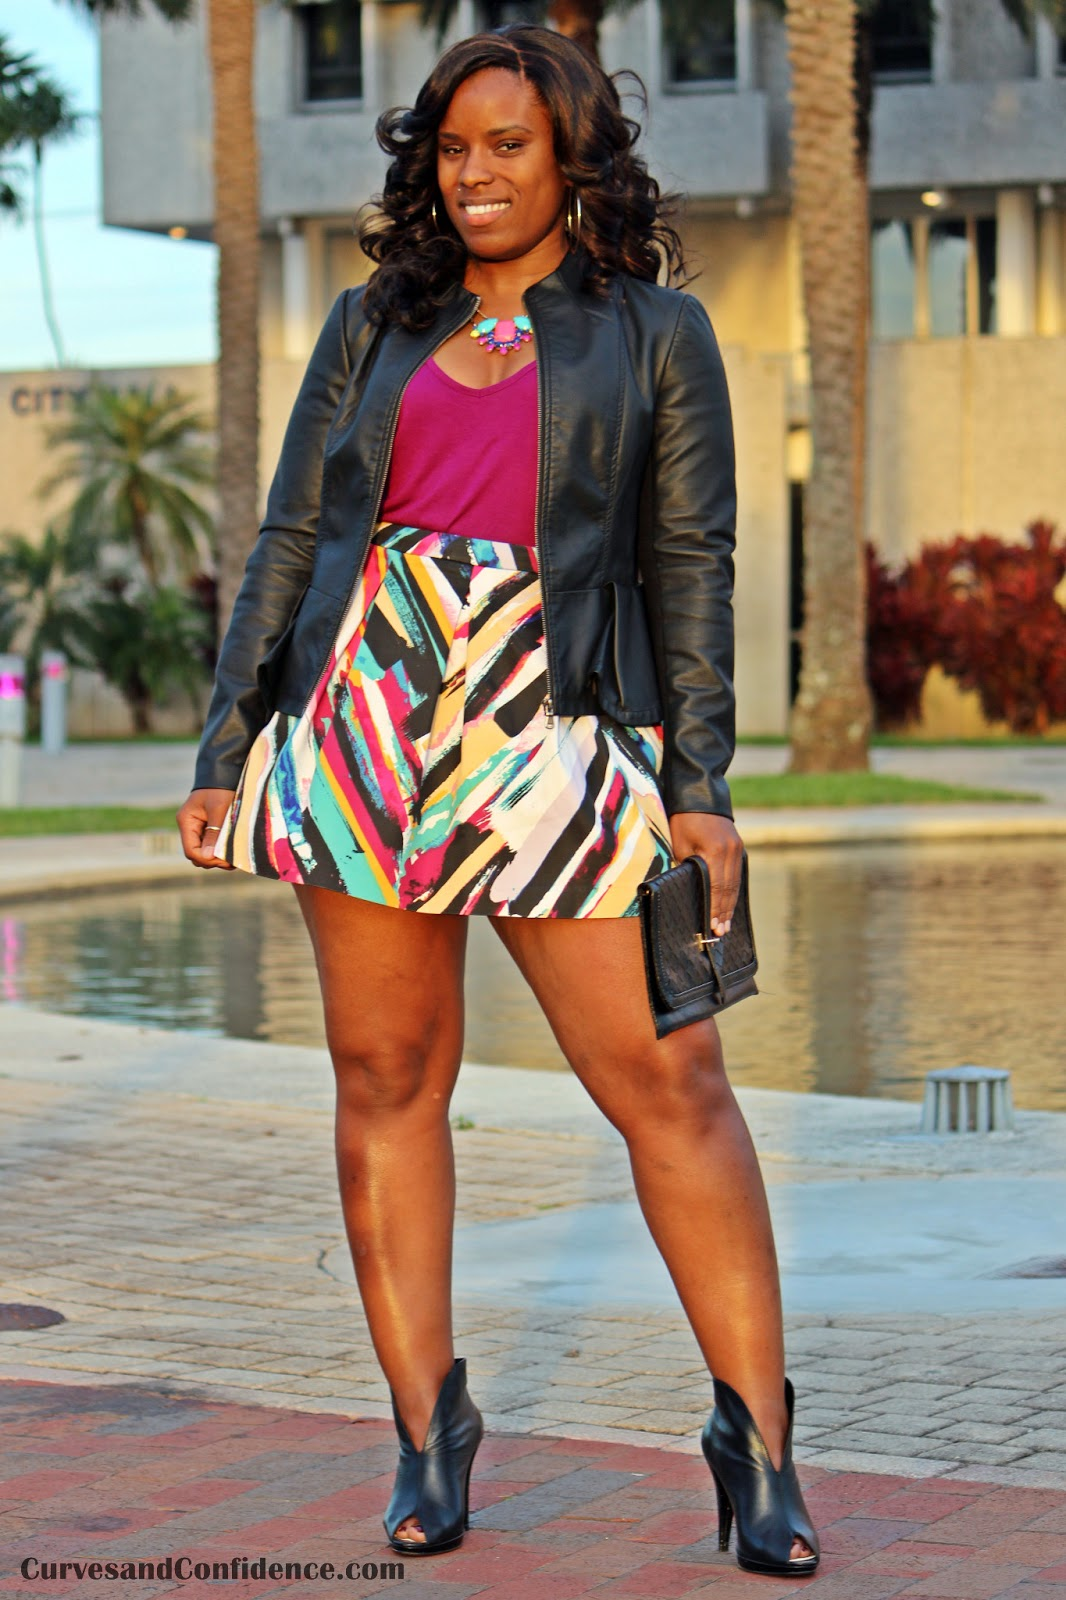 Black girl short skirt